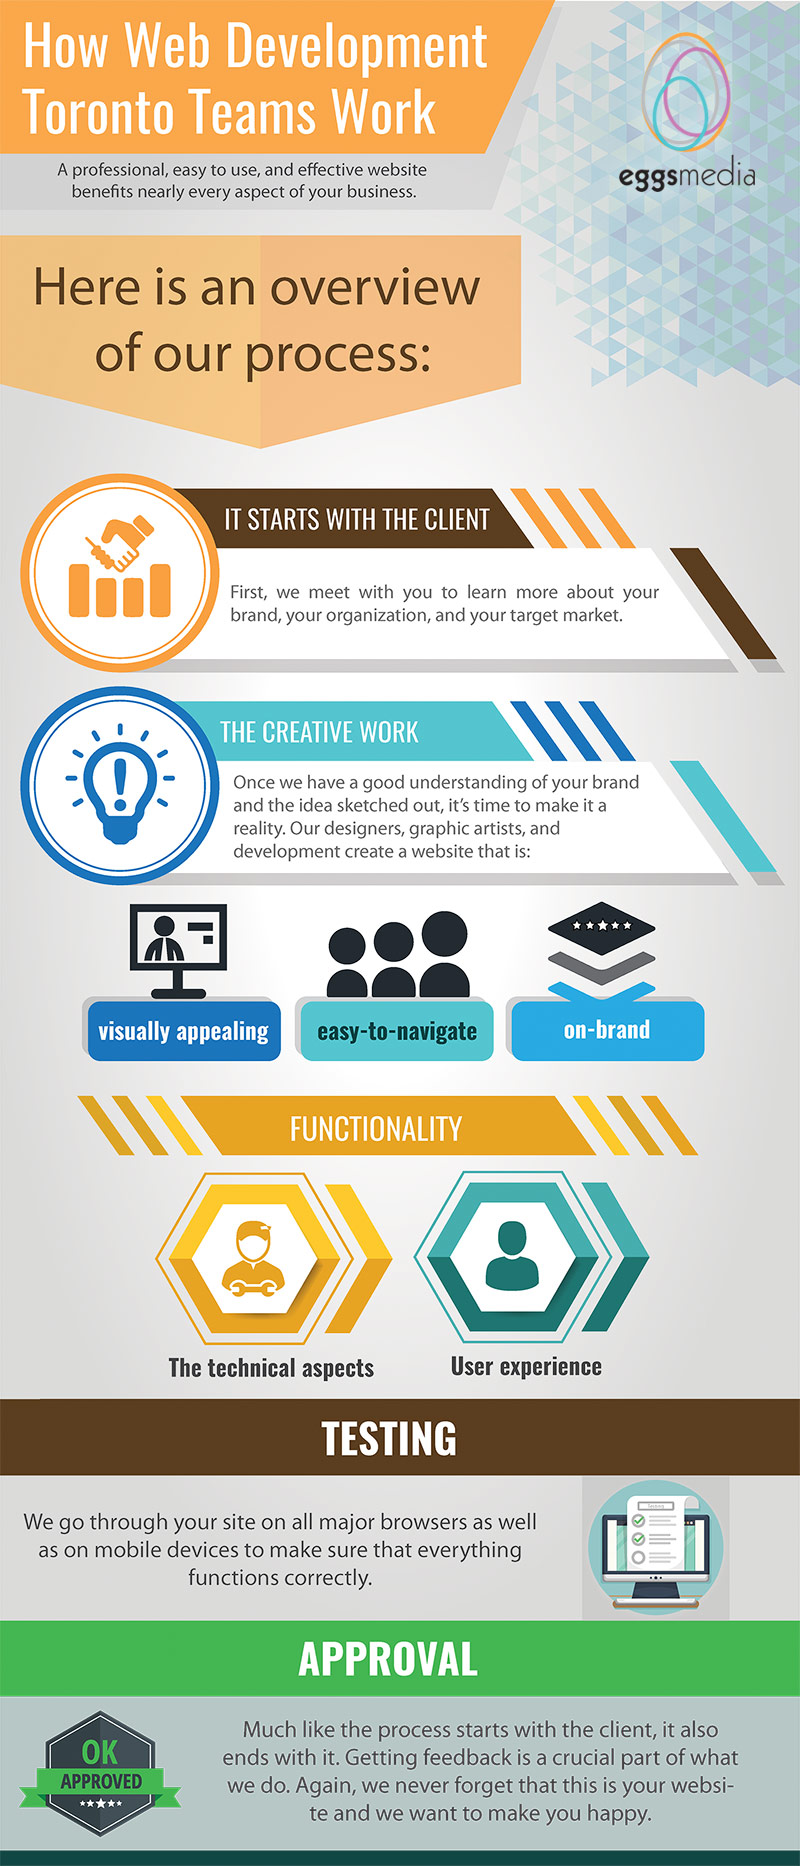 how web development toronto teams work eggsmedia infographic